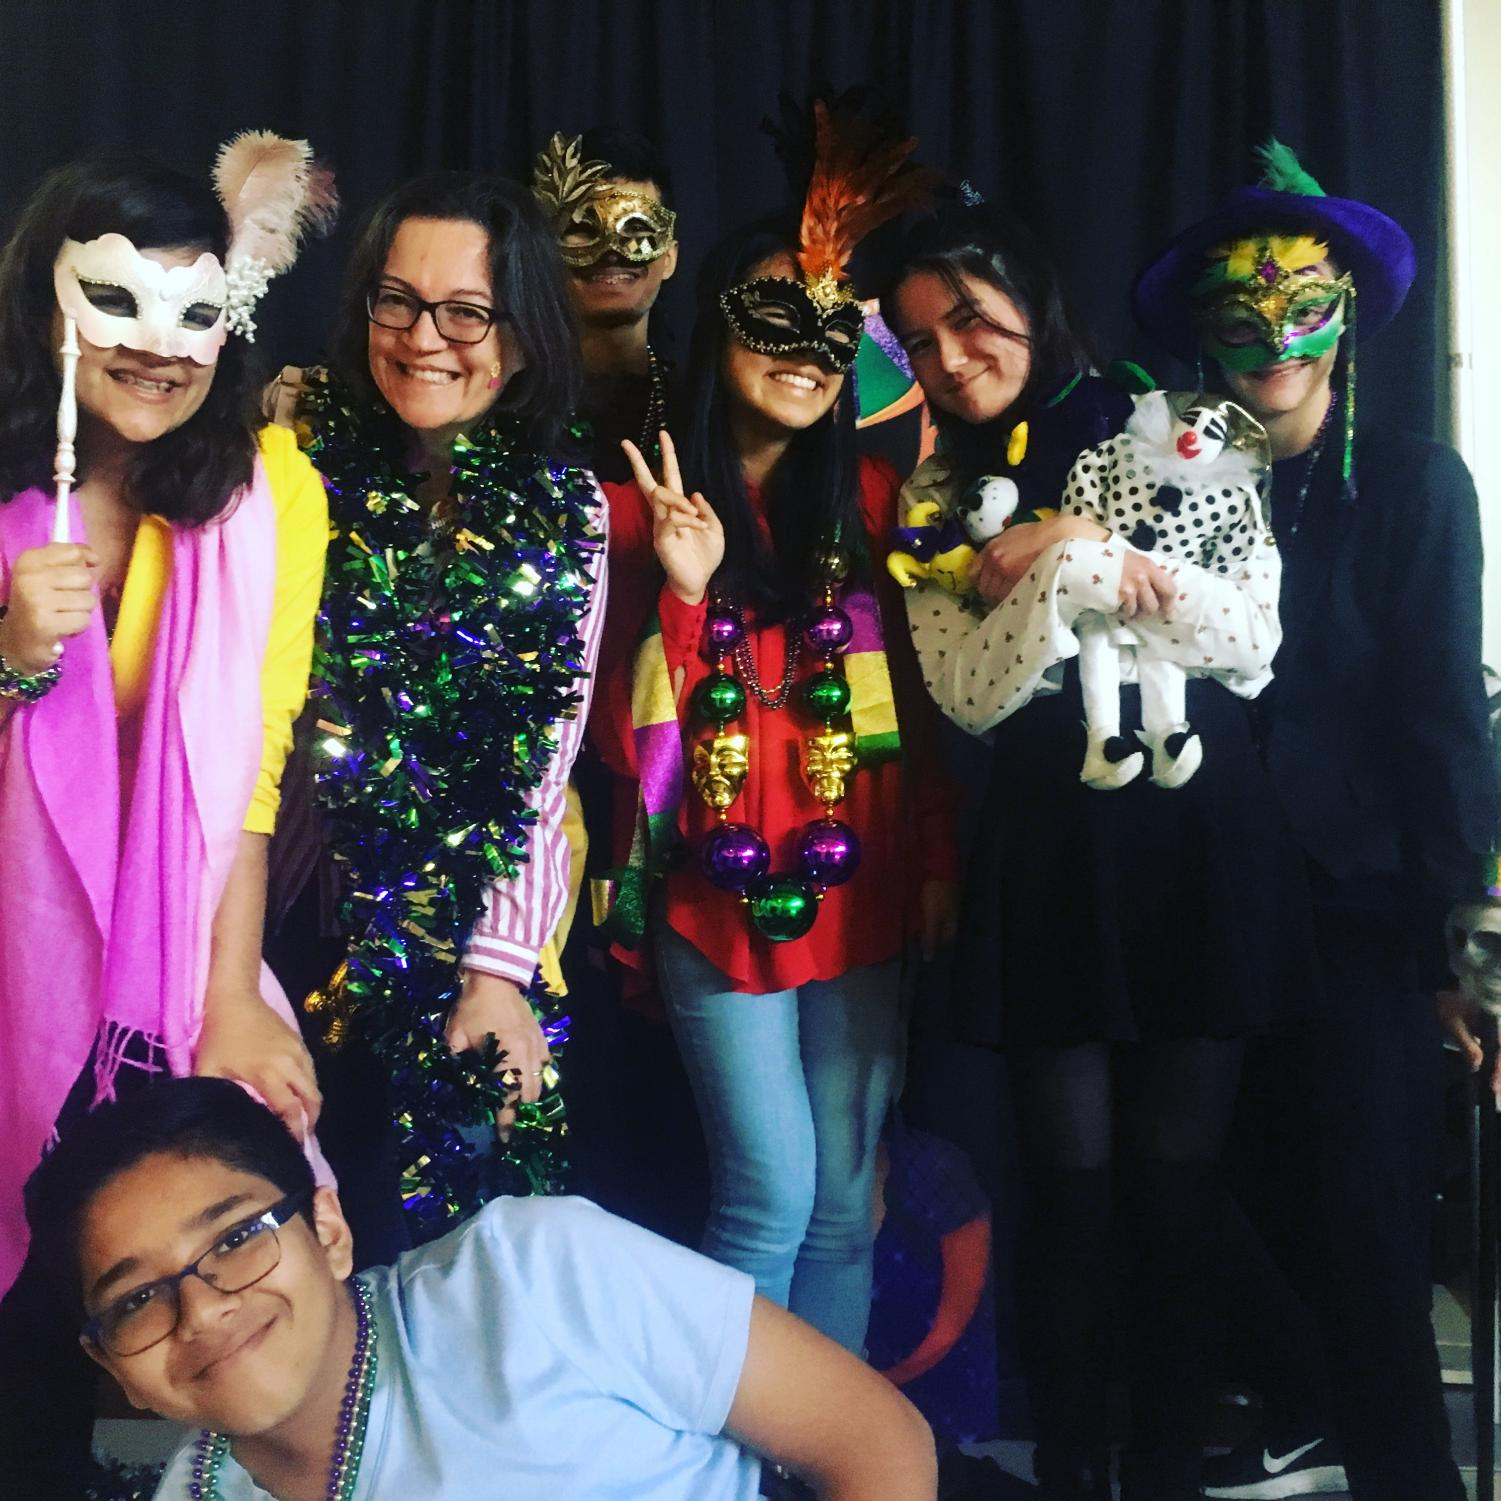 From left to right: Amadine Vardhan, Mme Cayla, Neil Karkhanis, Nicole Huynh, Jessica Mason, Jack Merrell, and Ronit Gupta pose at the Mardi Gras photo booth.